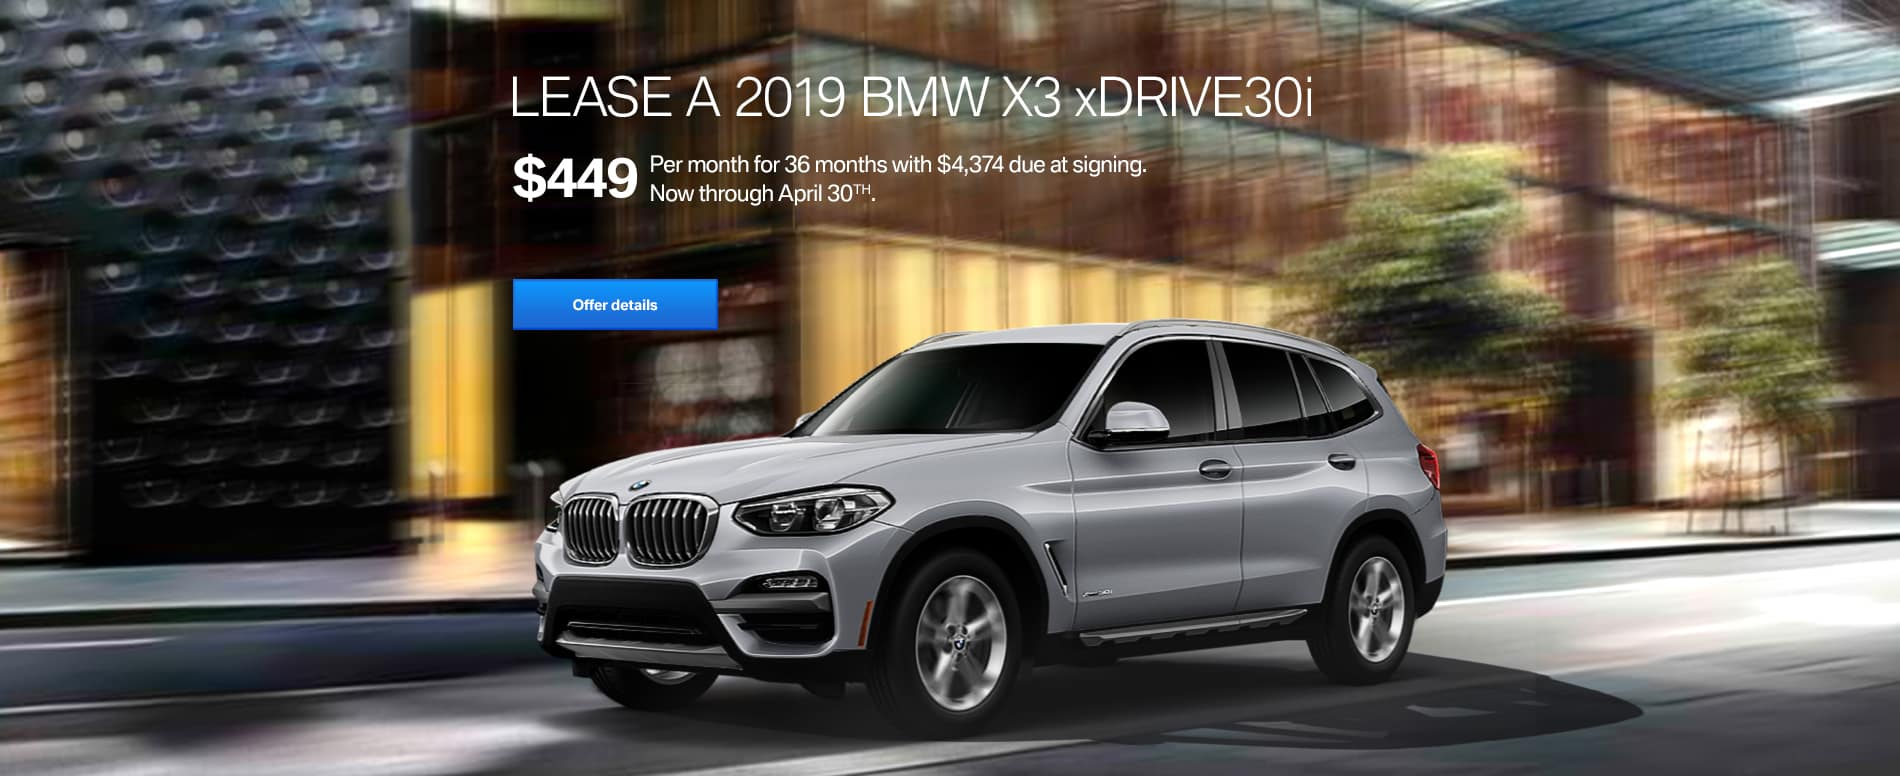 PUSH_2019_BMW_X3_xDrive30i_$449